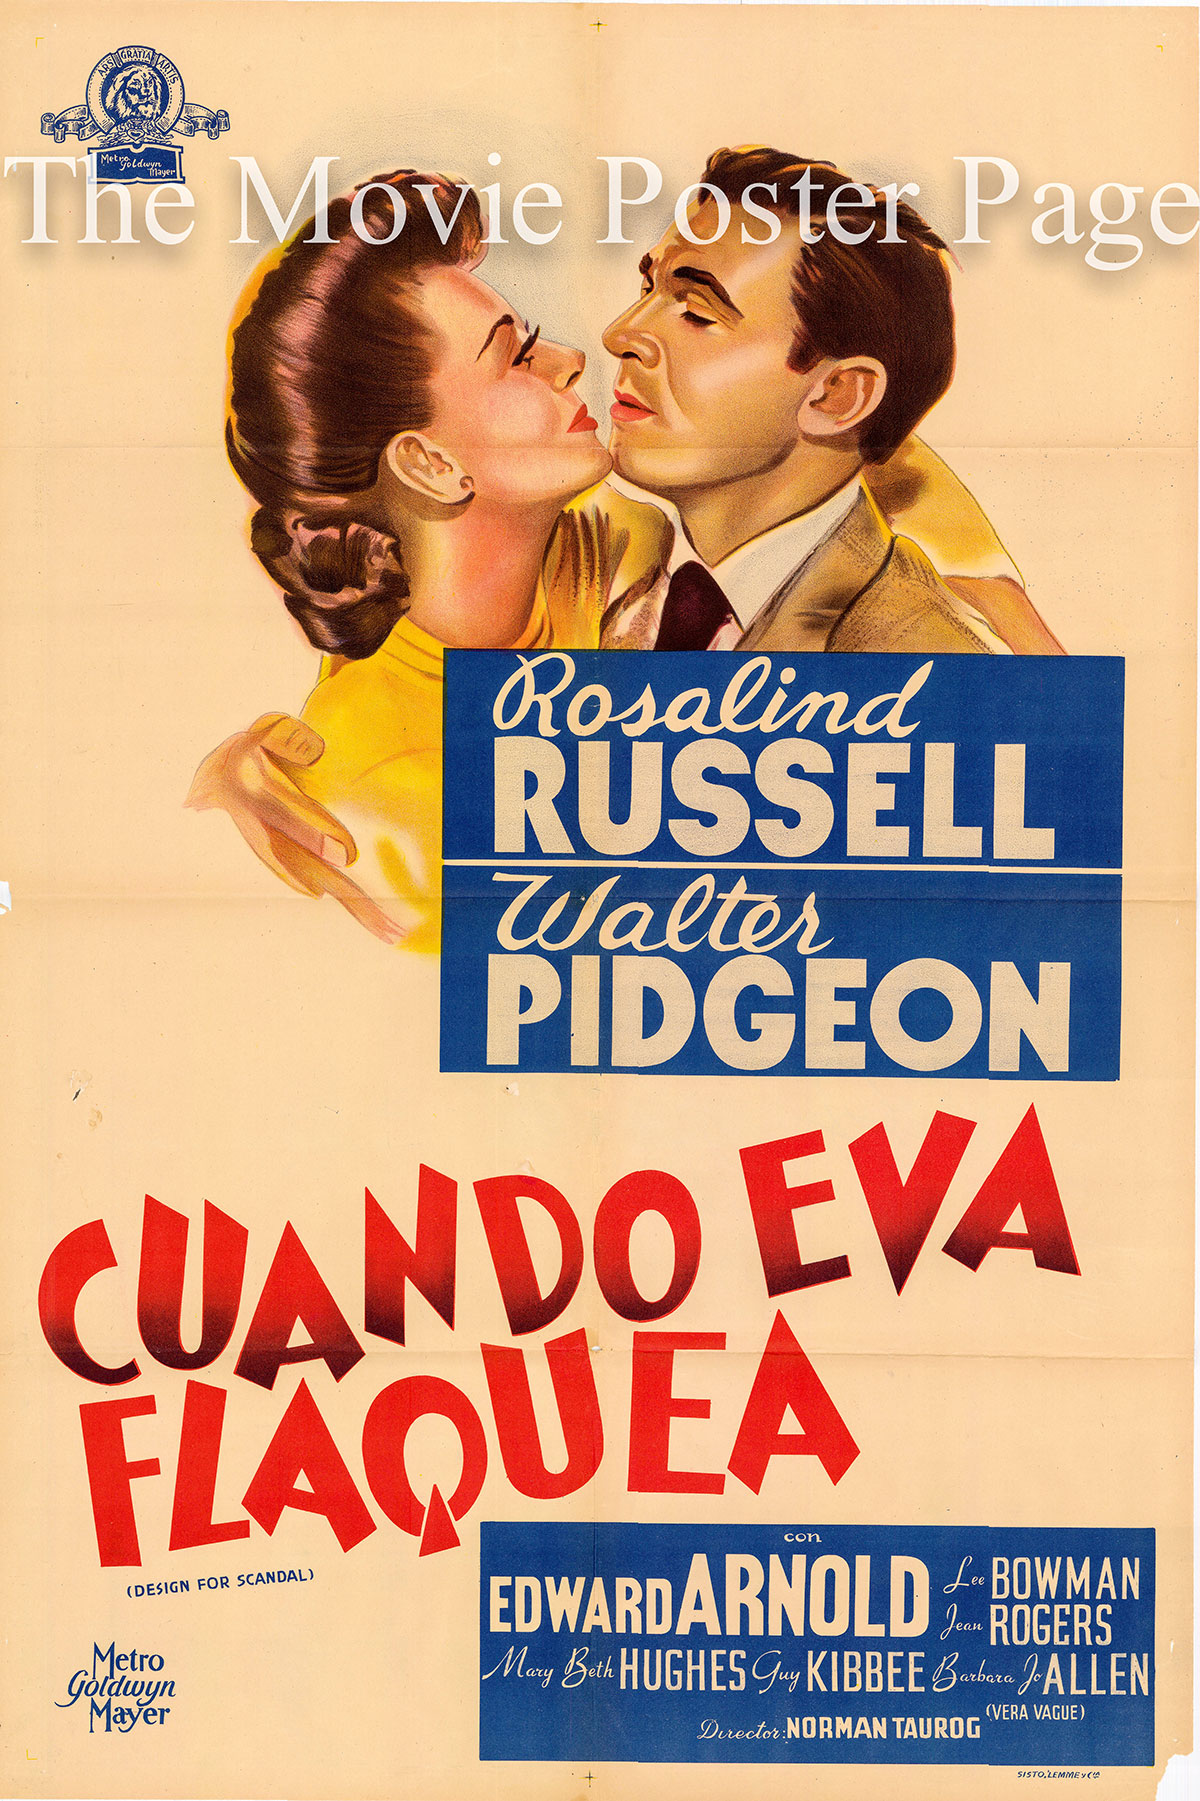 Pictured is an Argentine one-sheet poster for the 1941 Norman Taurog film Design for Scandal starring Rosalind Russell.